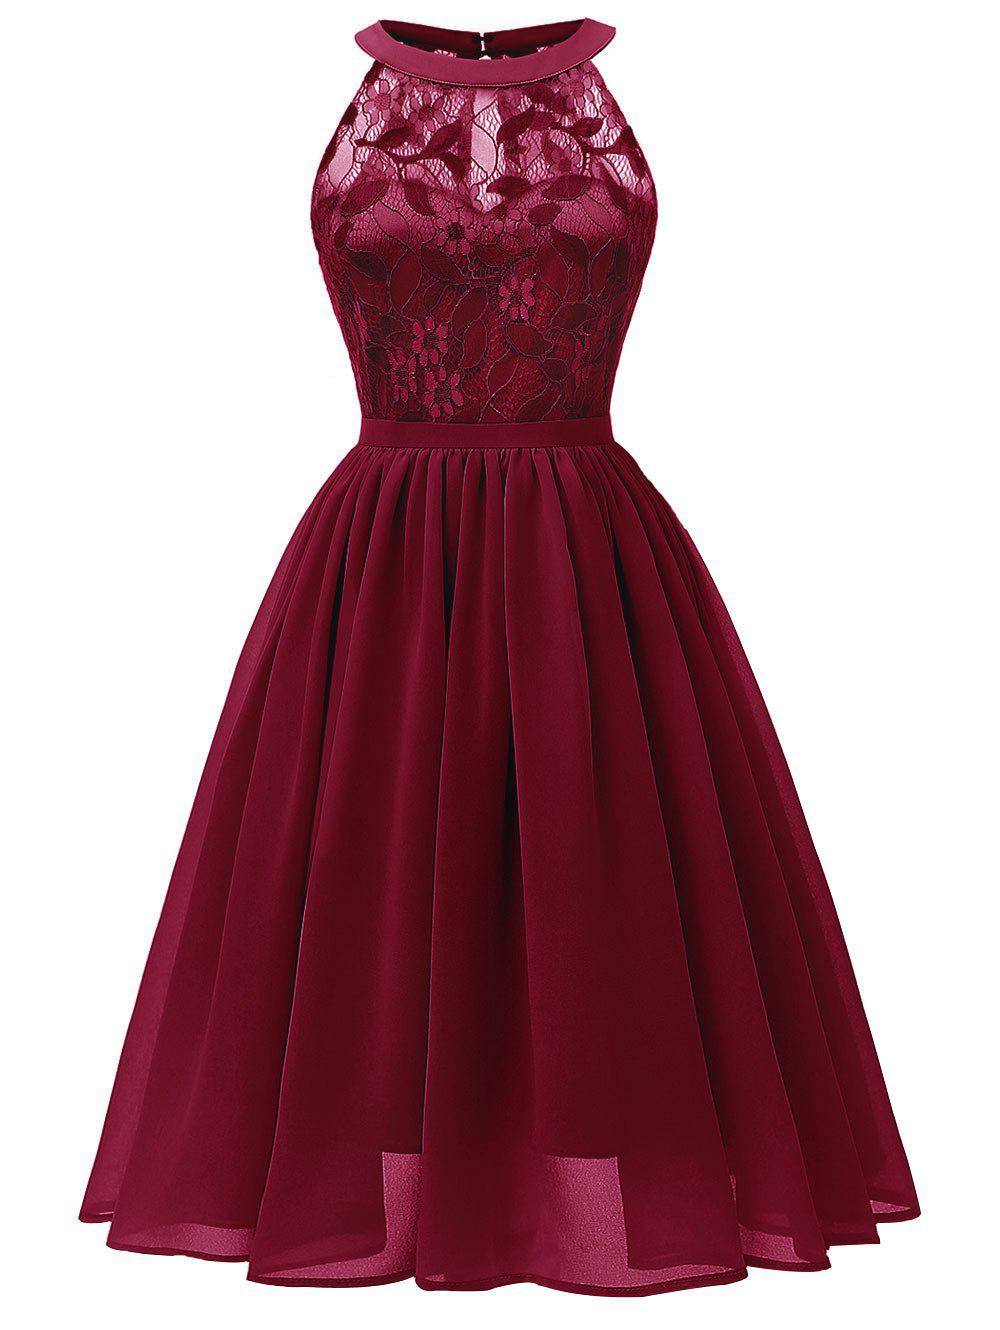 Affordable Sleeveless Lace Insert Prom Dress